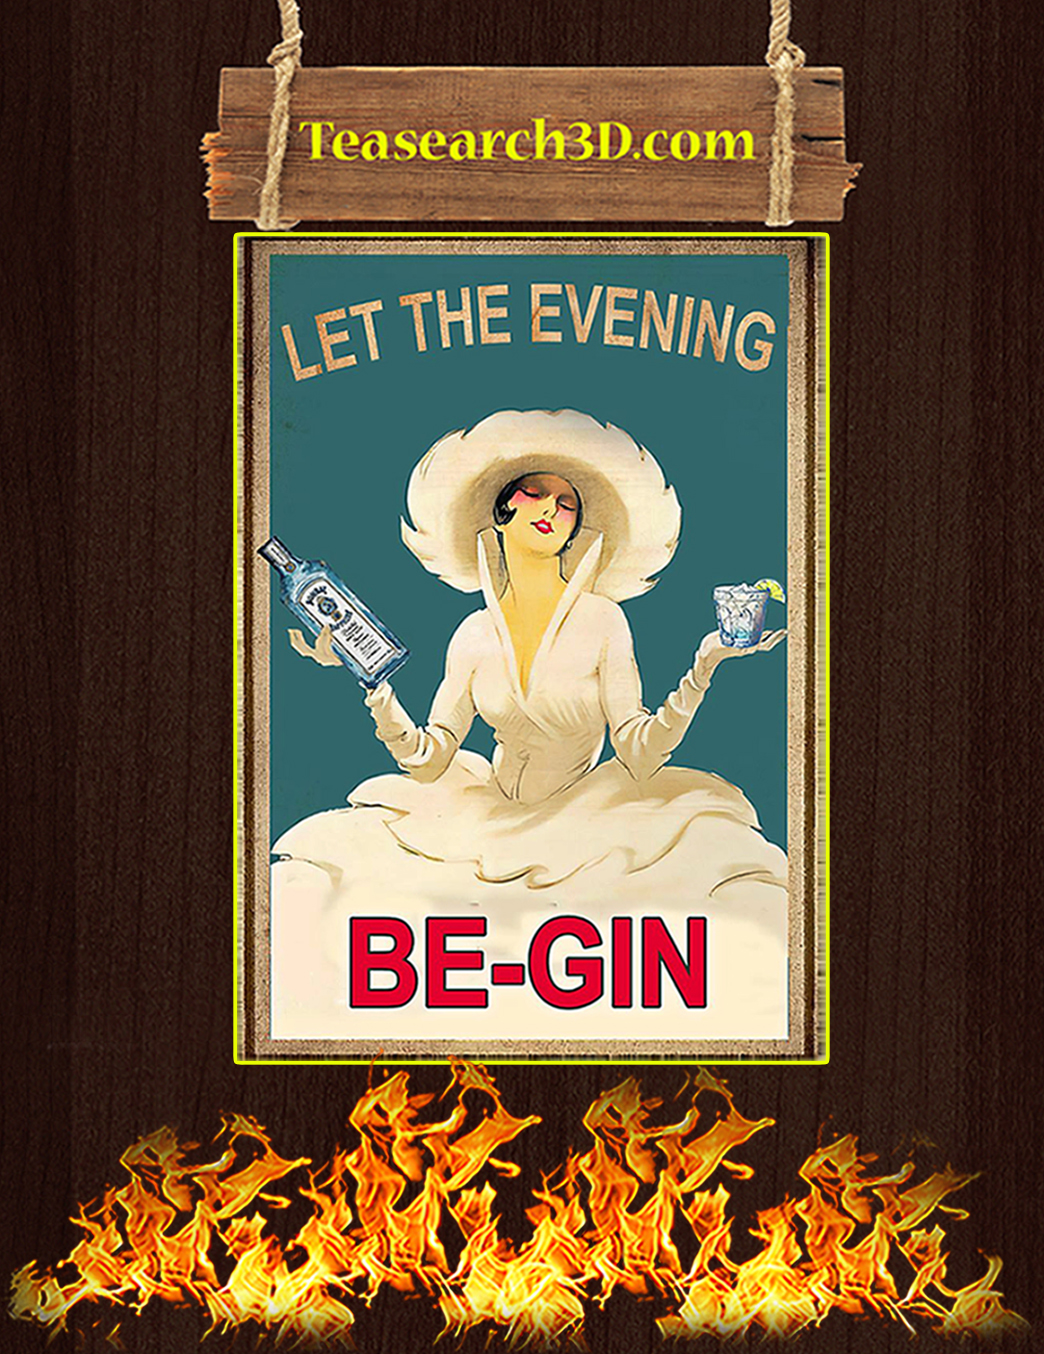 Let the evening be-gin poster A1